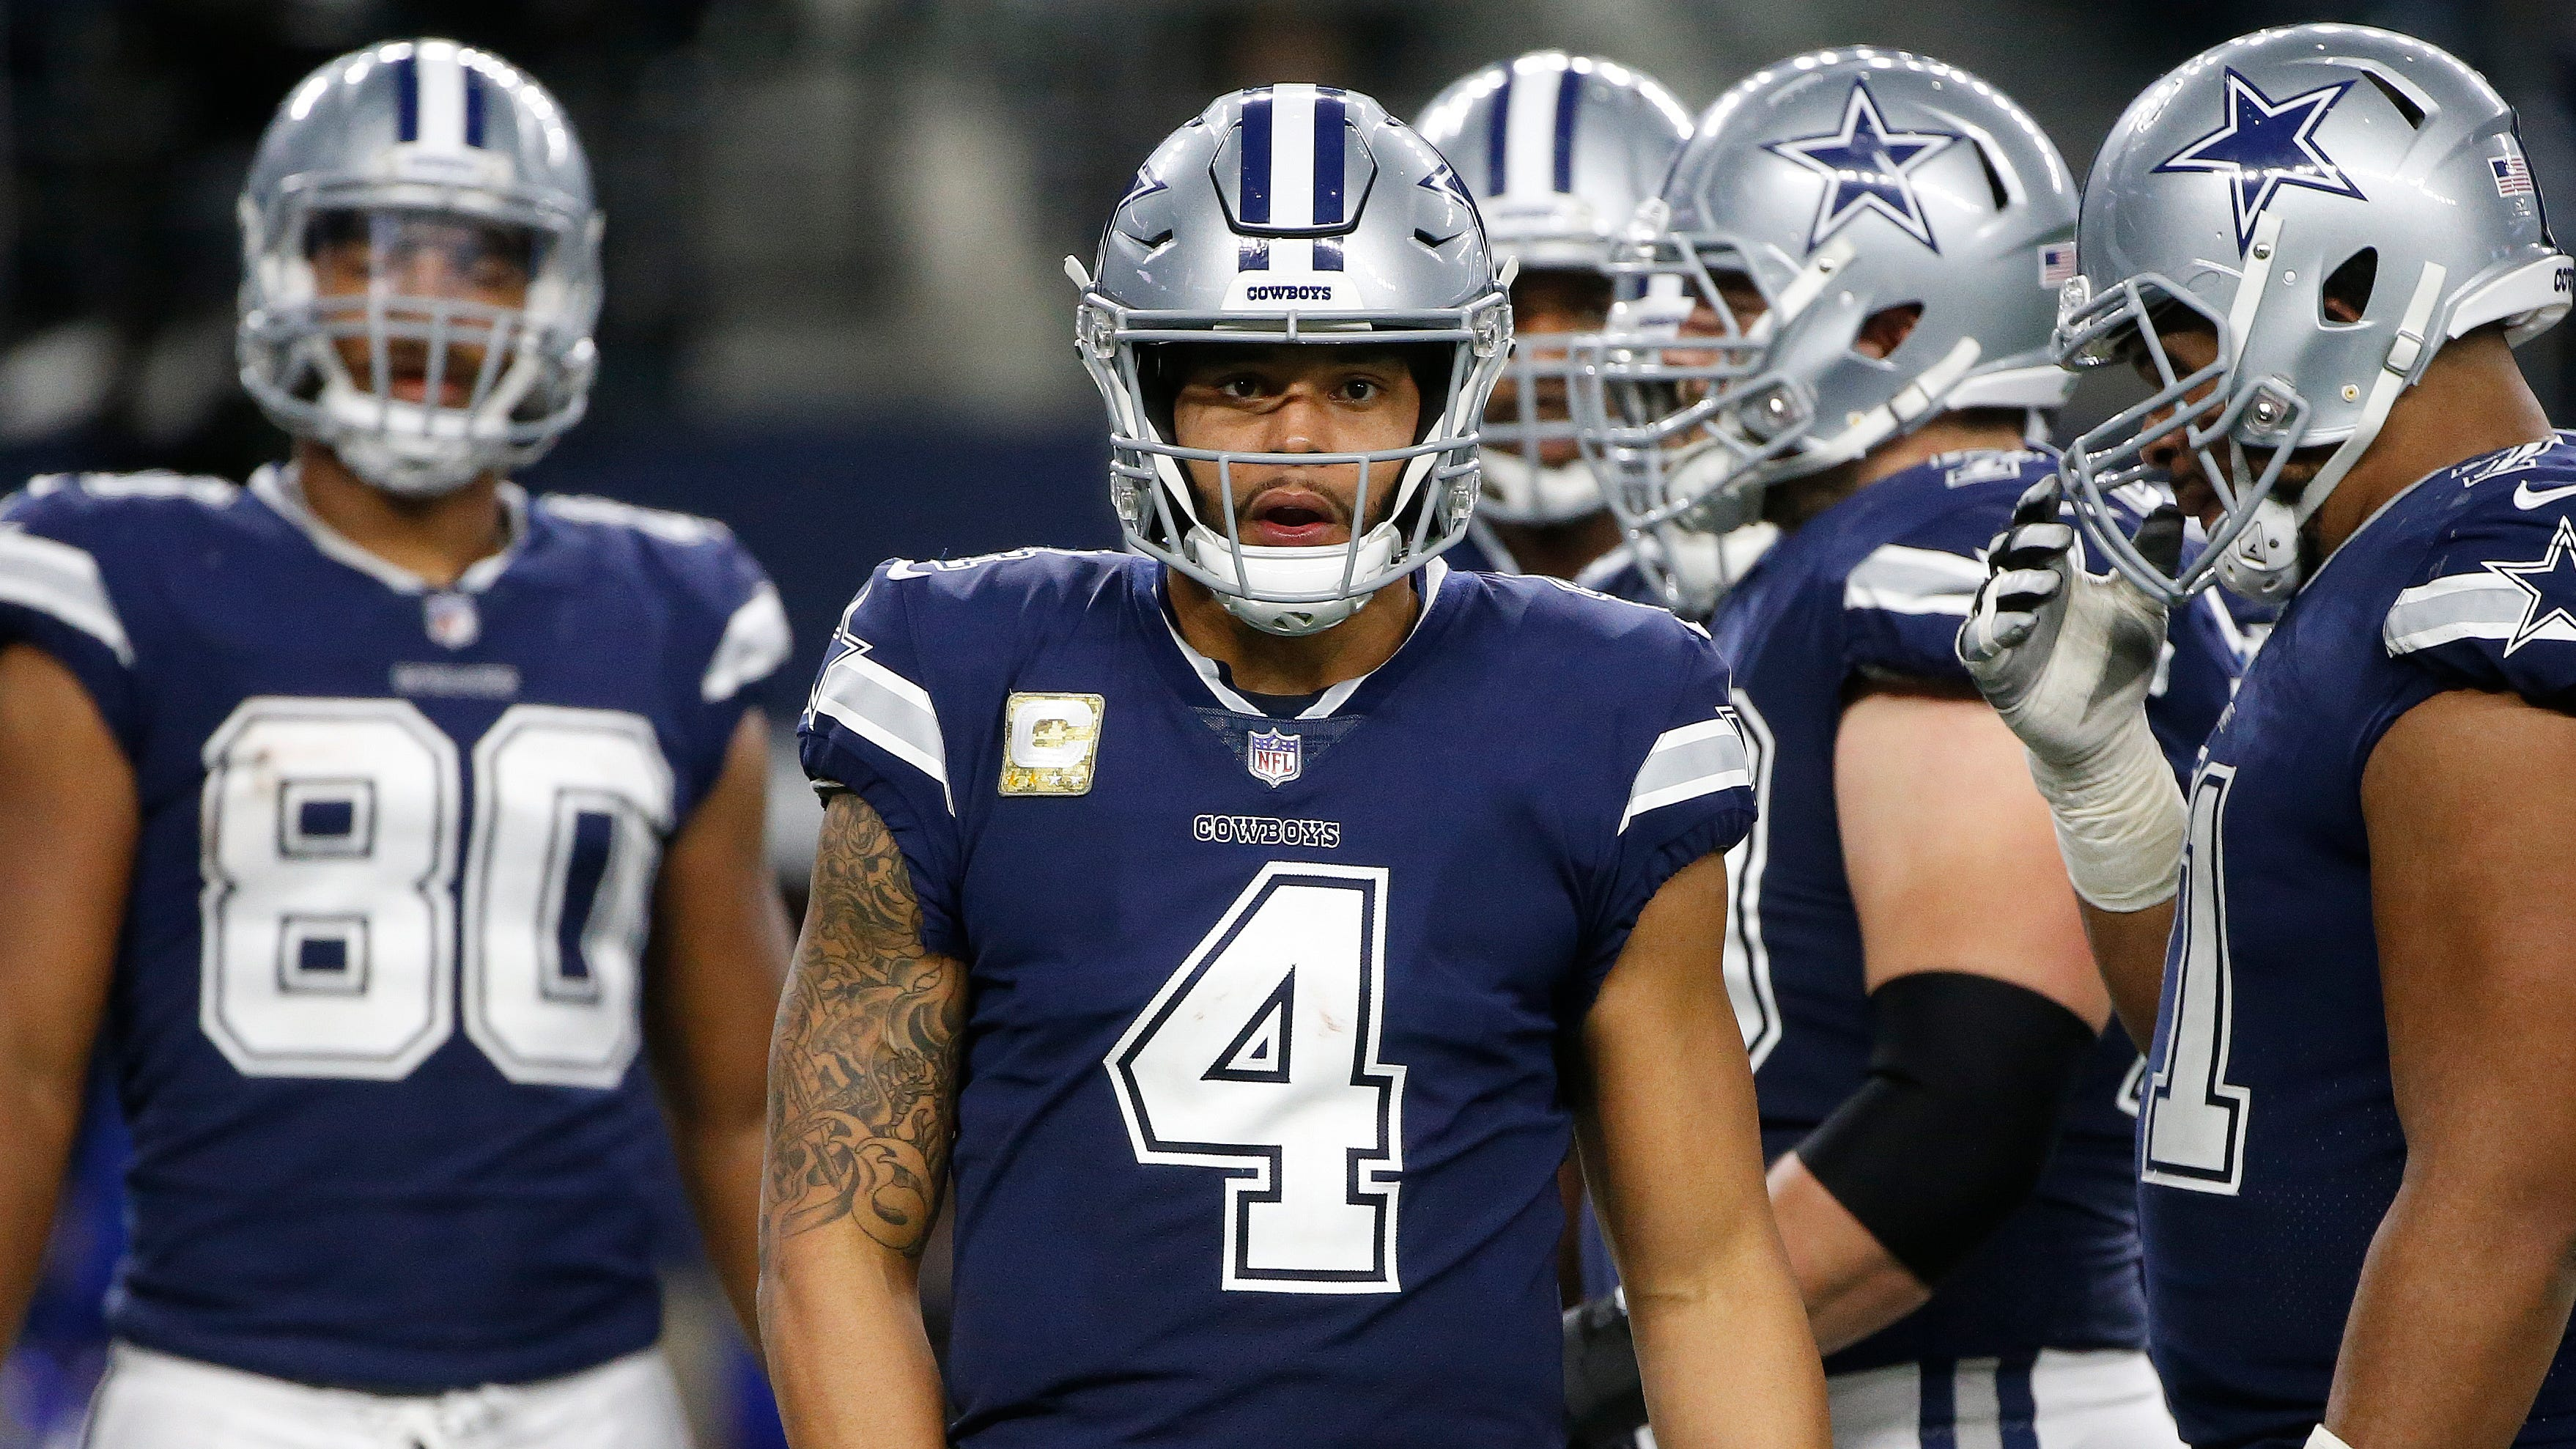 With a humbling loss Monday night still fresh in their minds, the Cowboys are practicing angry in preparation for Sunday night's game vs. the Eagles.